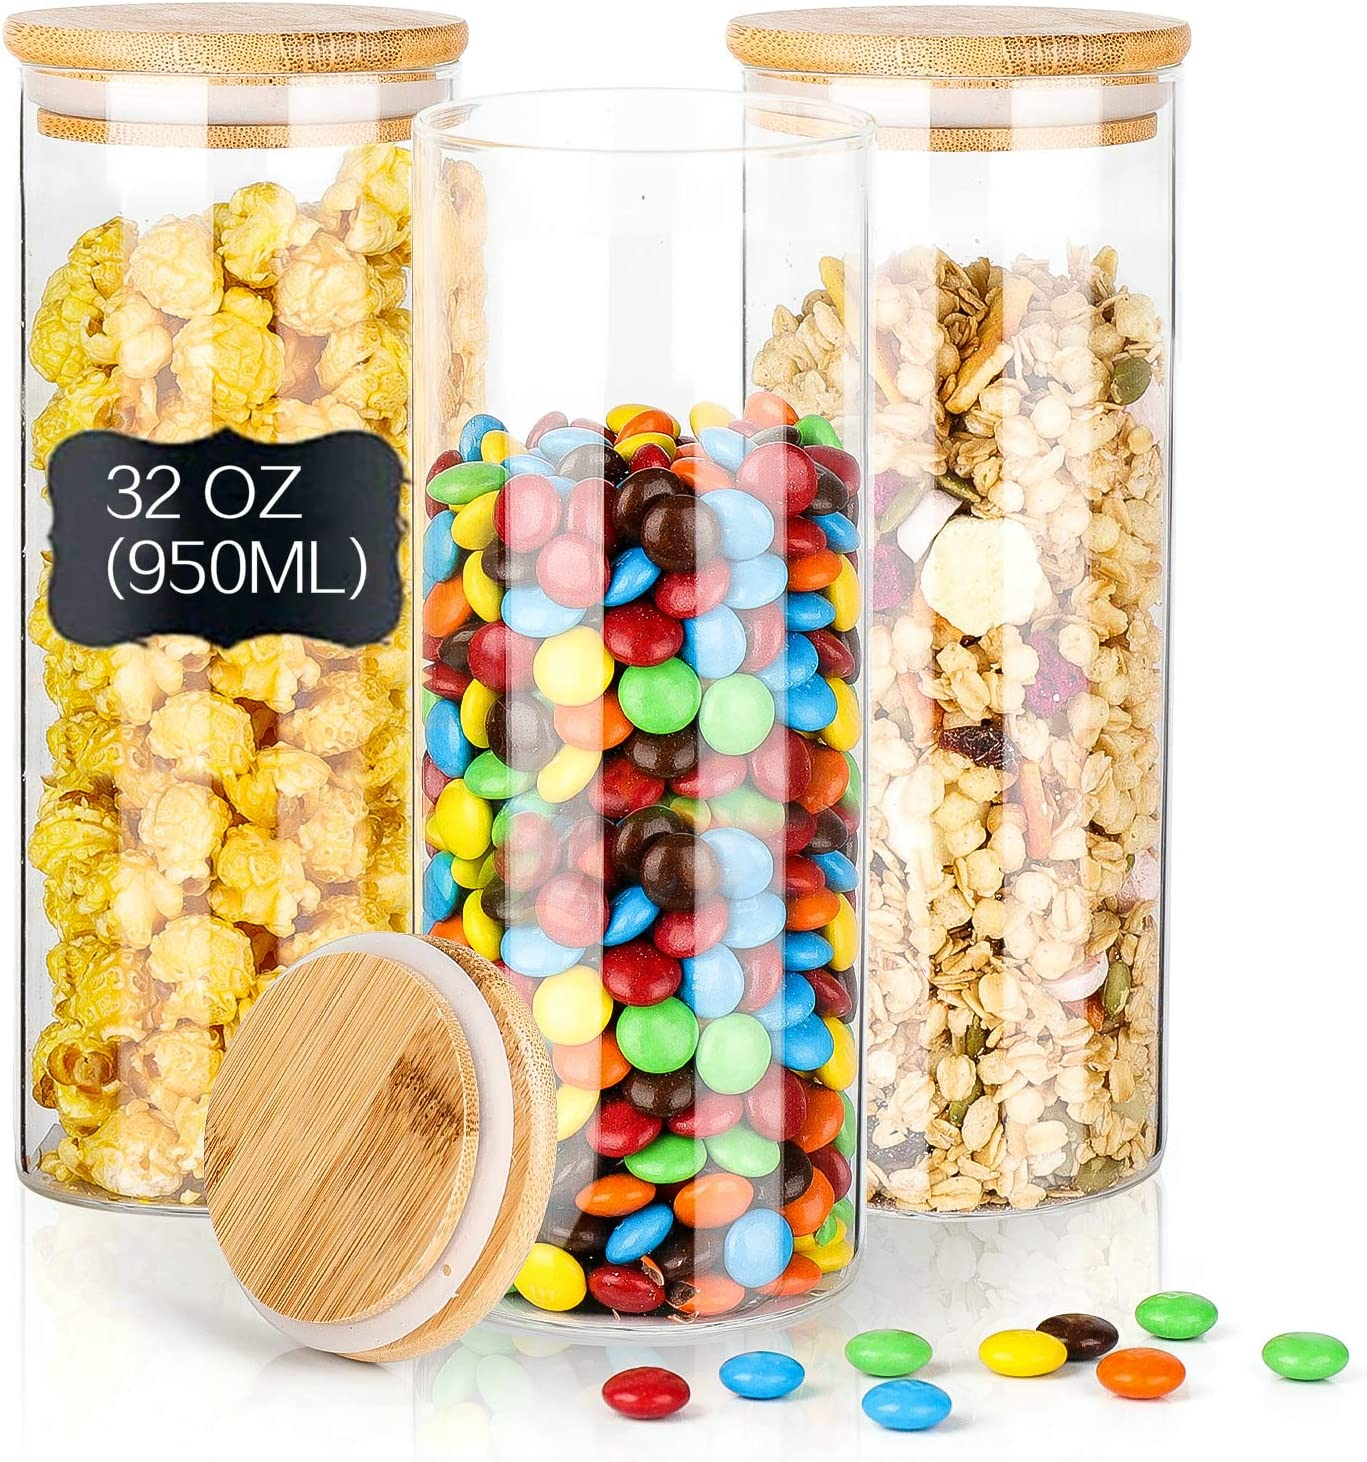 Glass Jars with Bamboo Lids,3PACK Glass Food Storage Canister Sets,32OZ/950ML Glass Storage Jars for Flour, Sugar, Coffee, Cookie Jar, Candy, Spaghetti ,Rice and Spice Jars